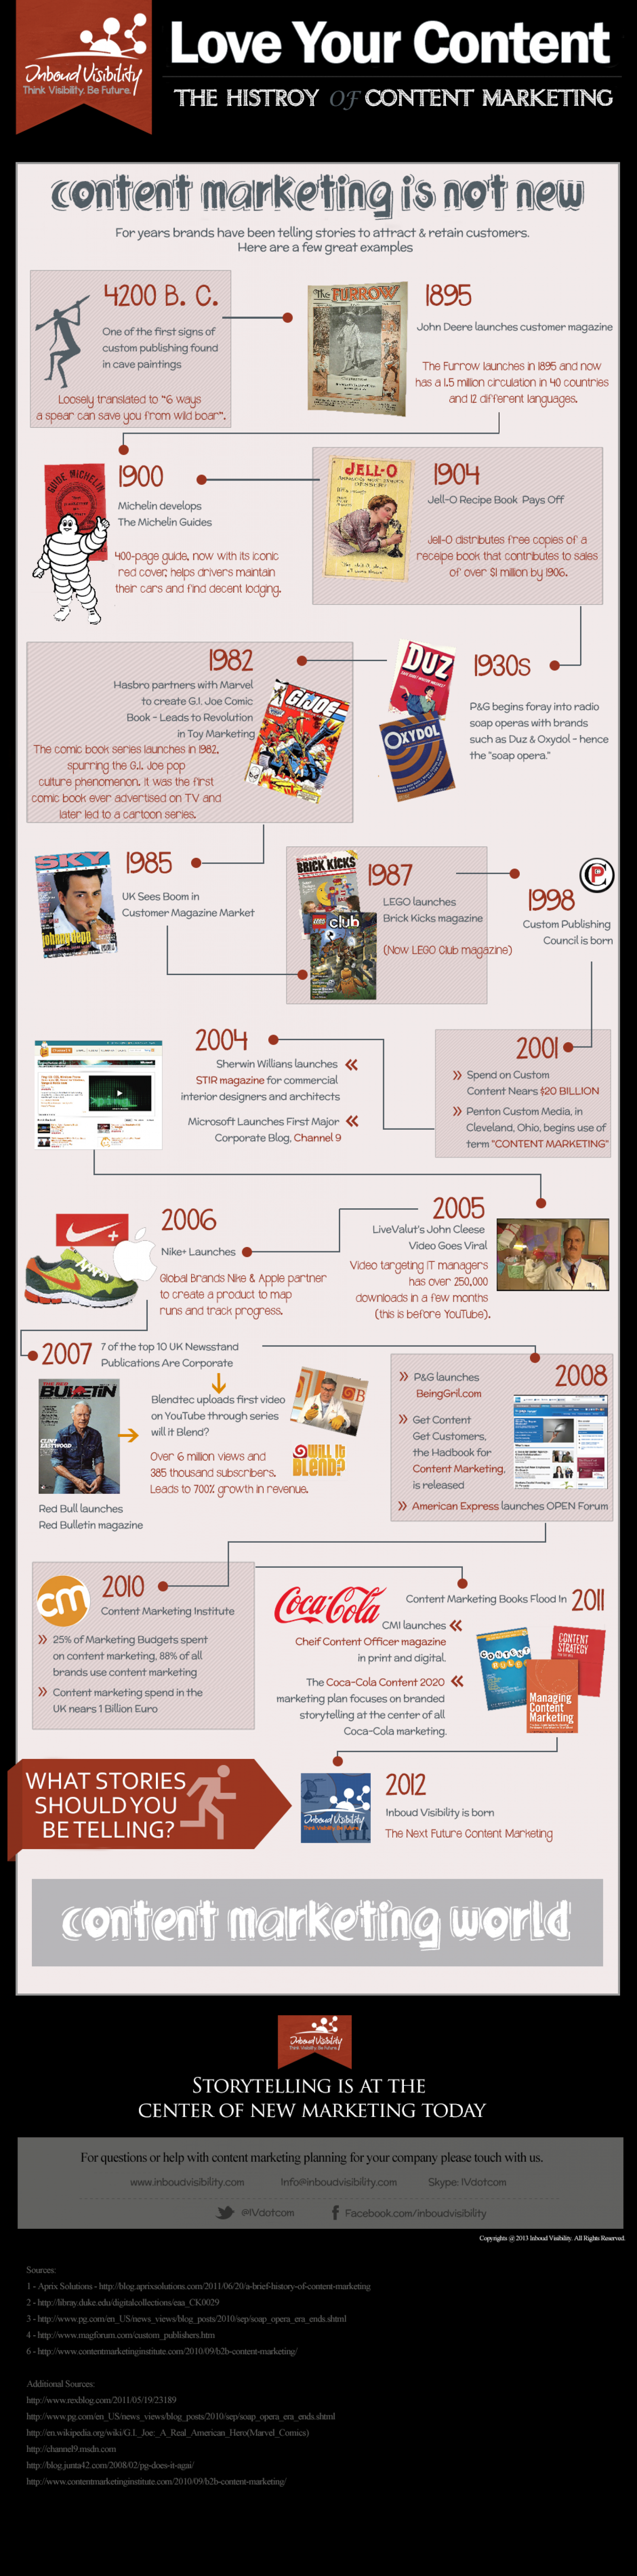 Love Your Content - History of Content Marketing World Infographic